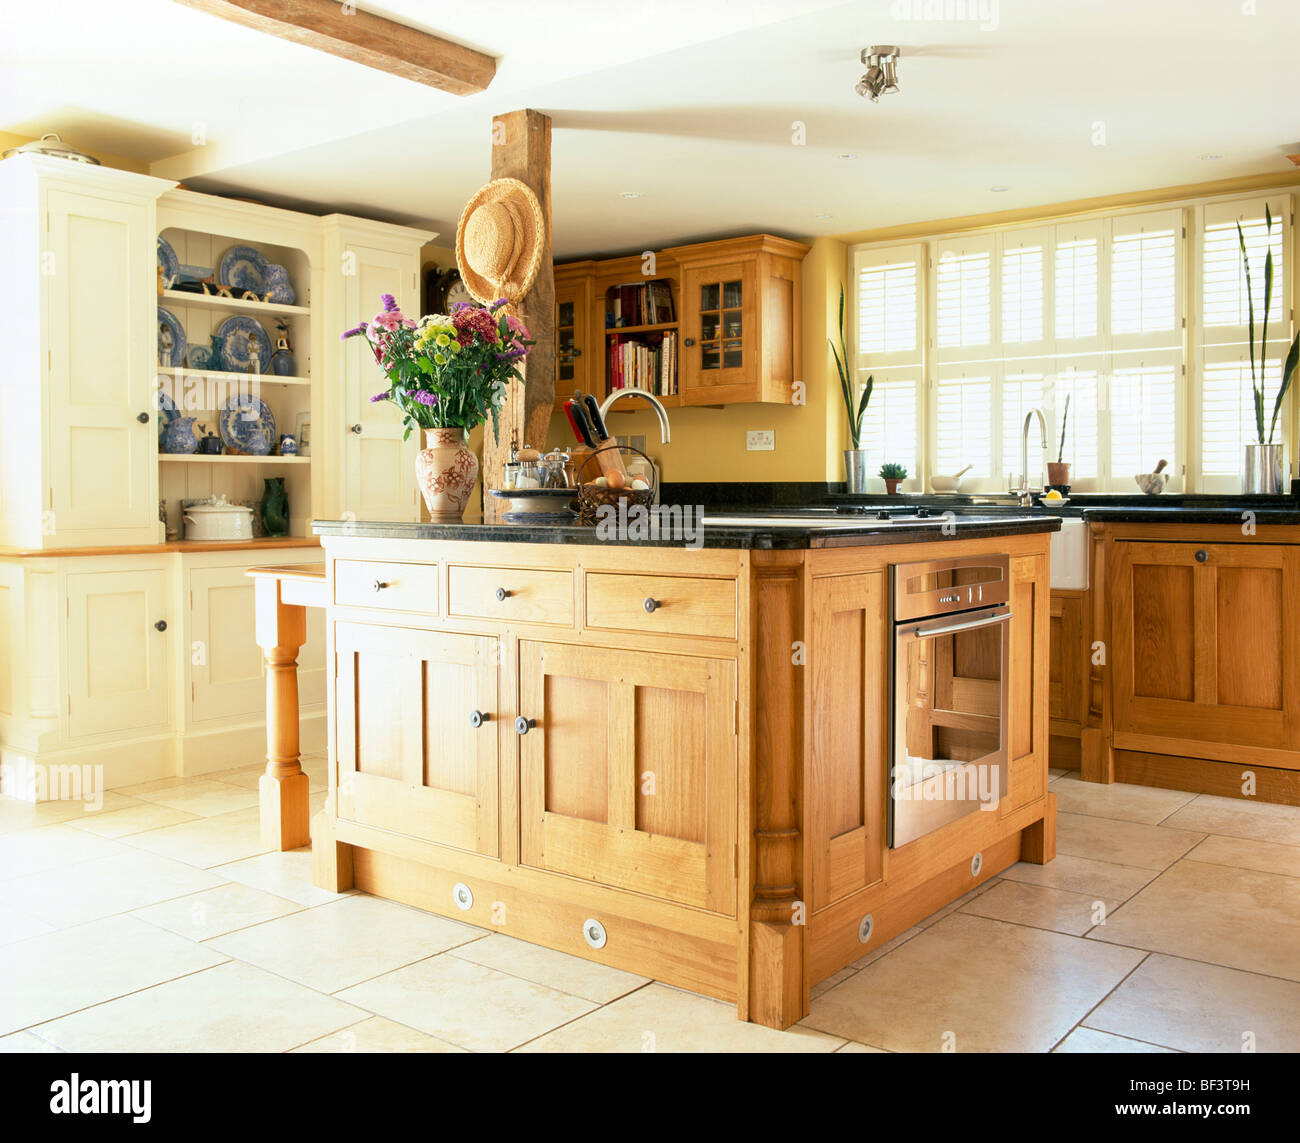 Island Units For Kitchens: Pale Wood Island Unit With Sink And Oven In Traditional